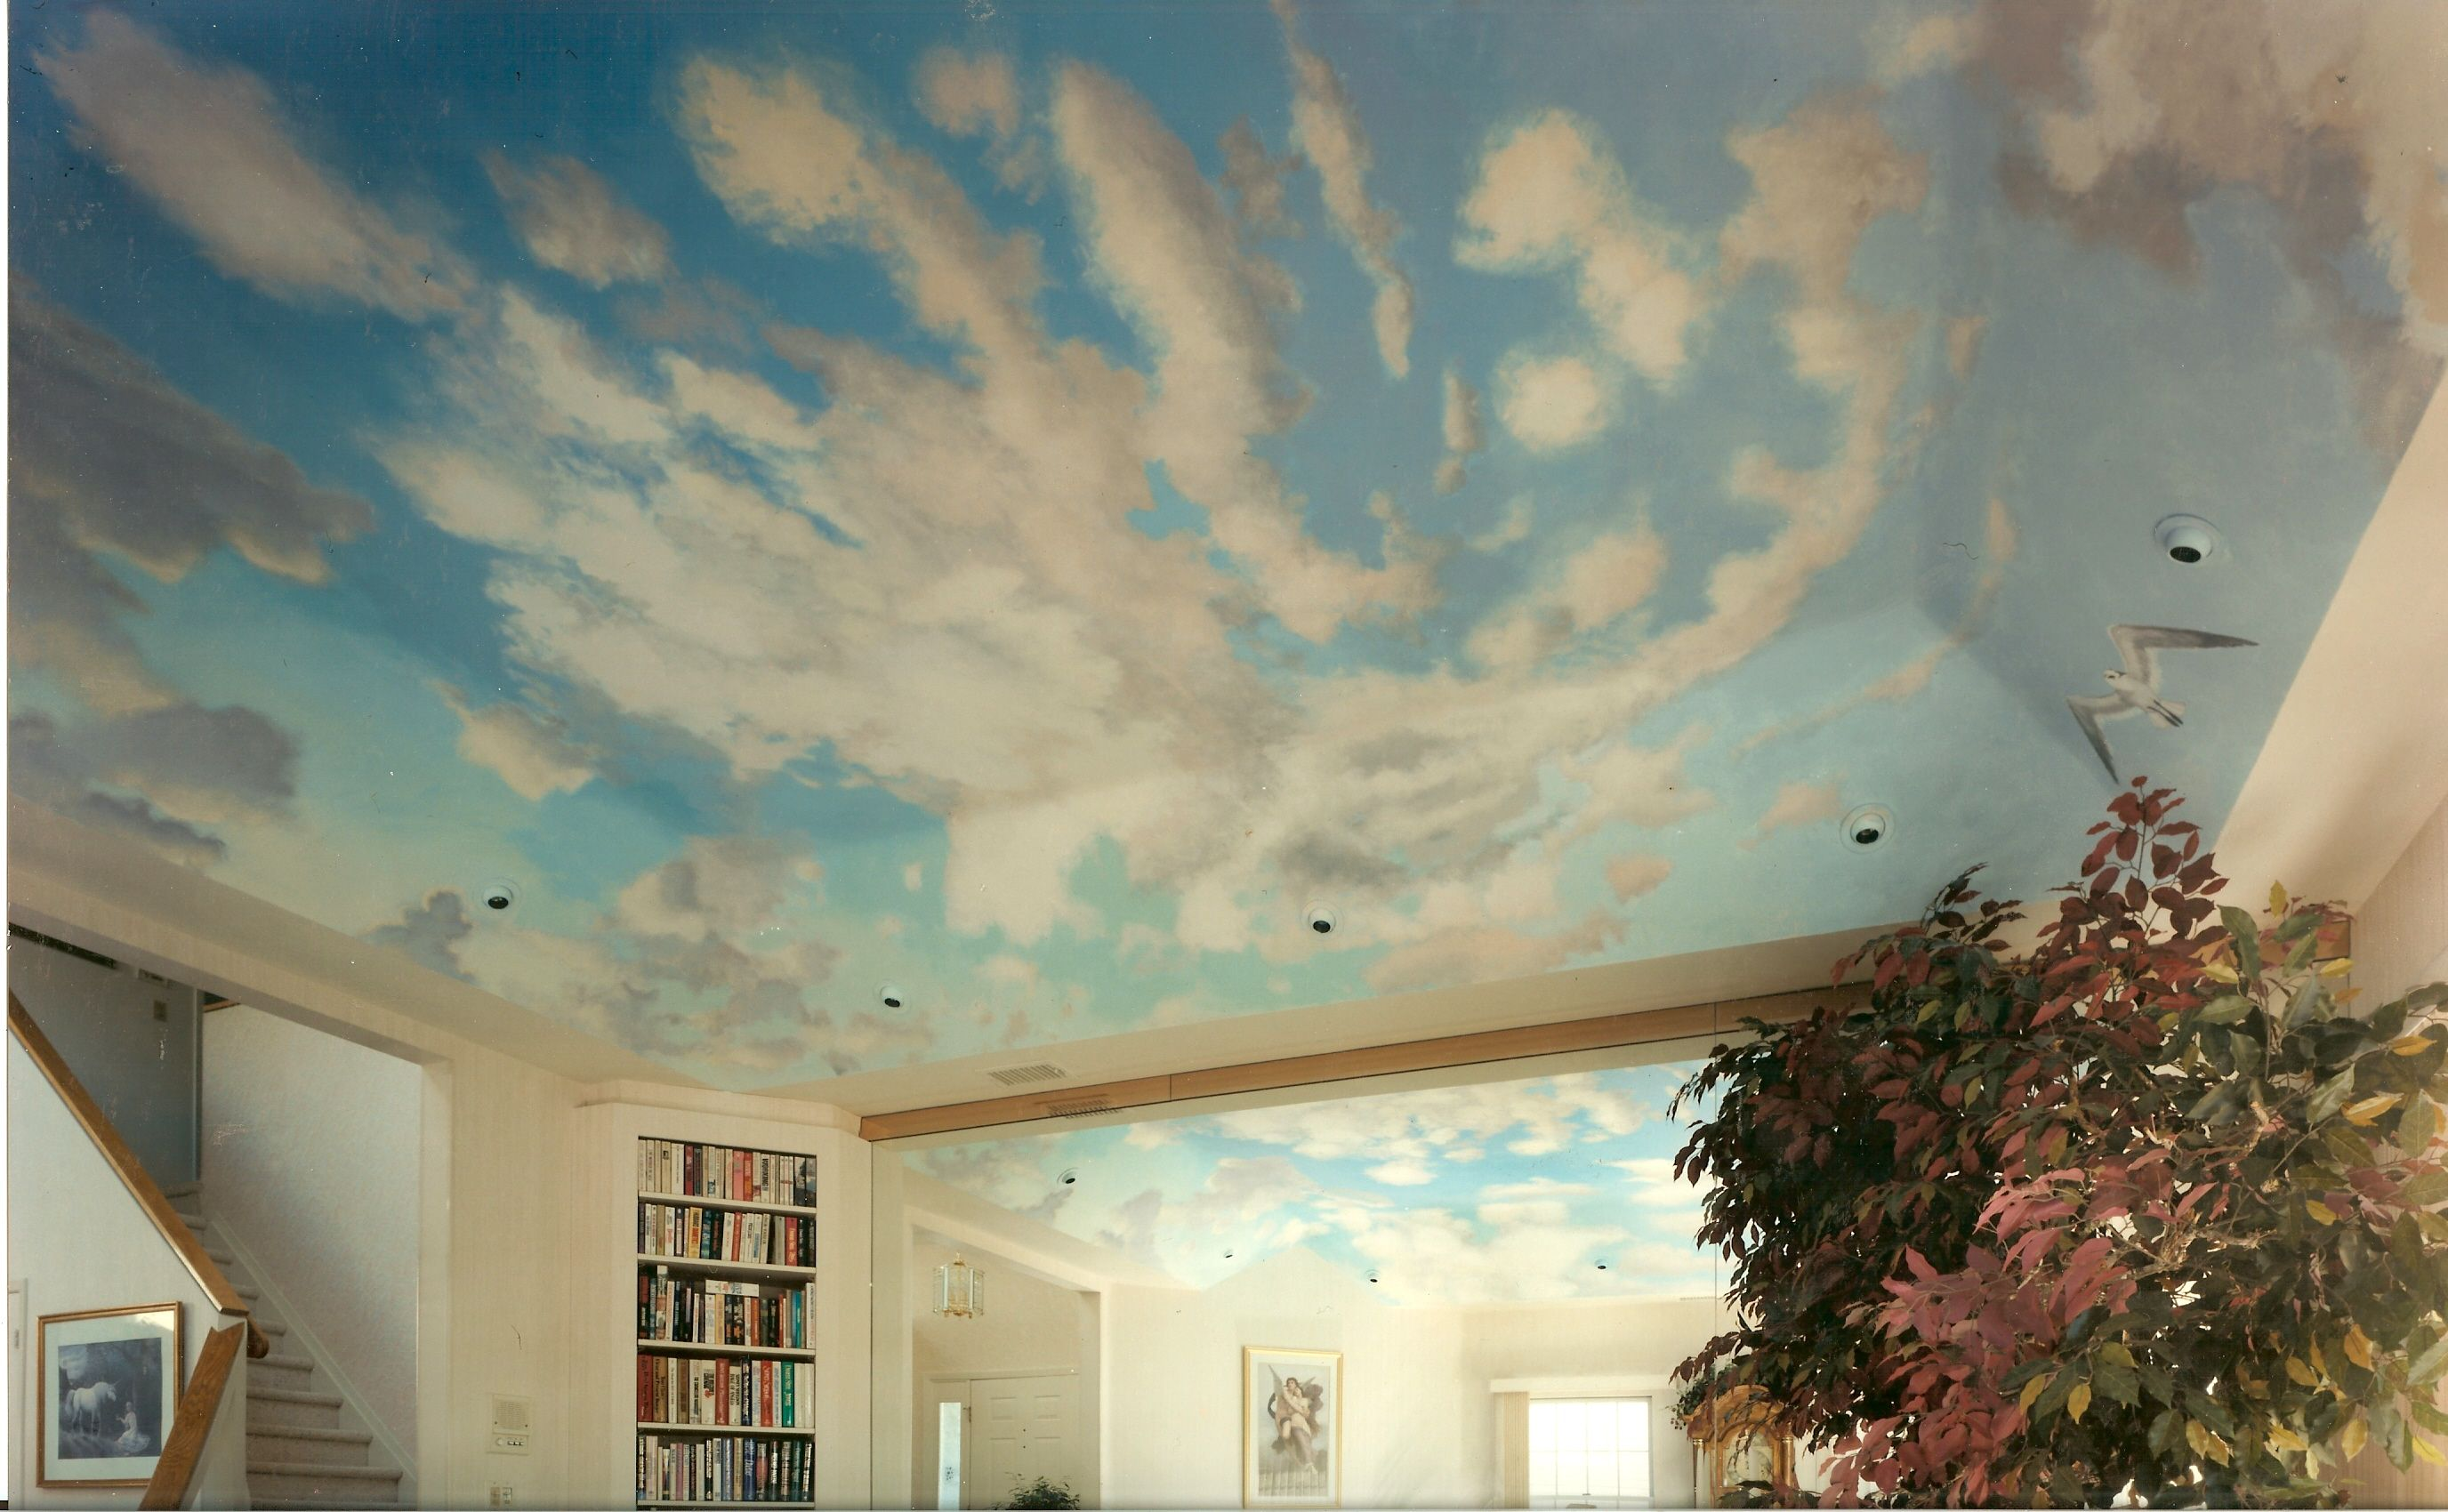 Ceiling mural for livingroom oyster bay ny houses for Ceiling mural sky